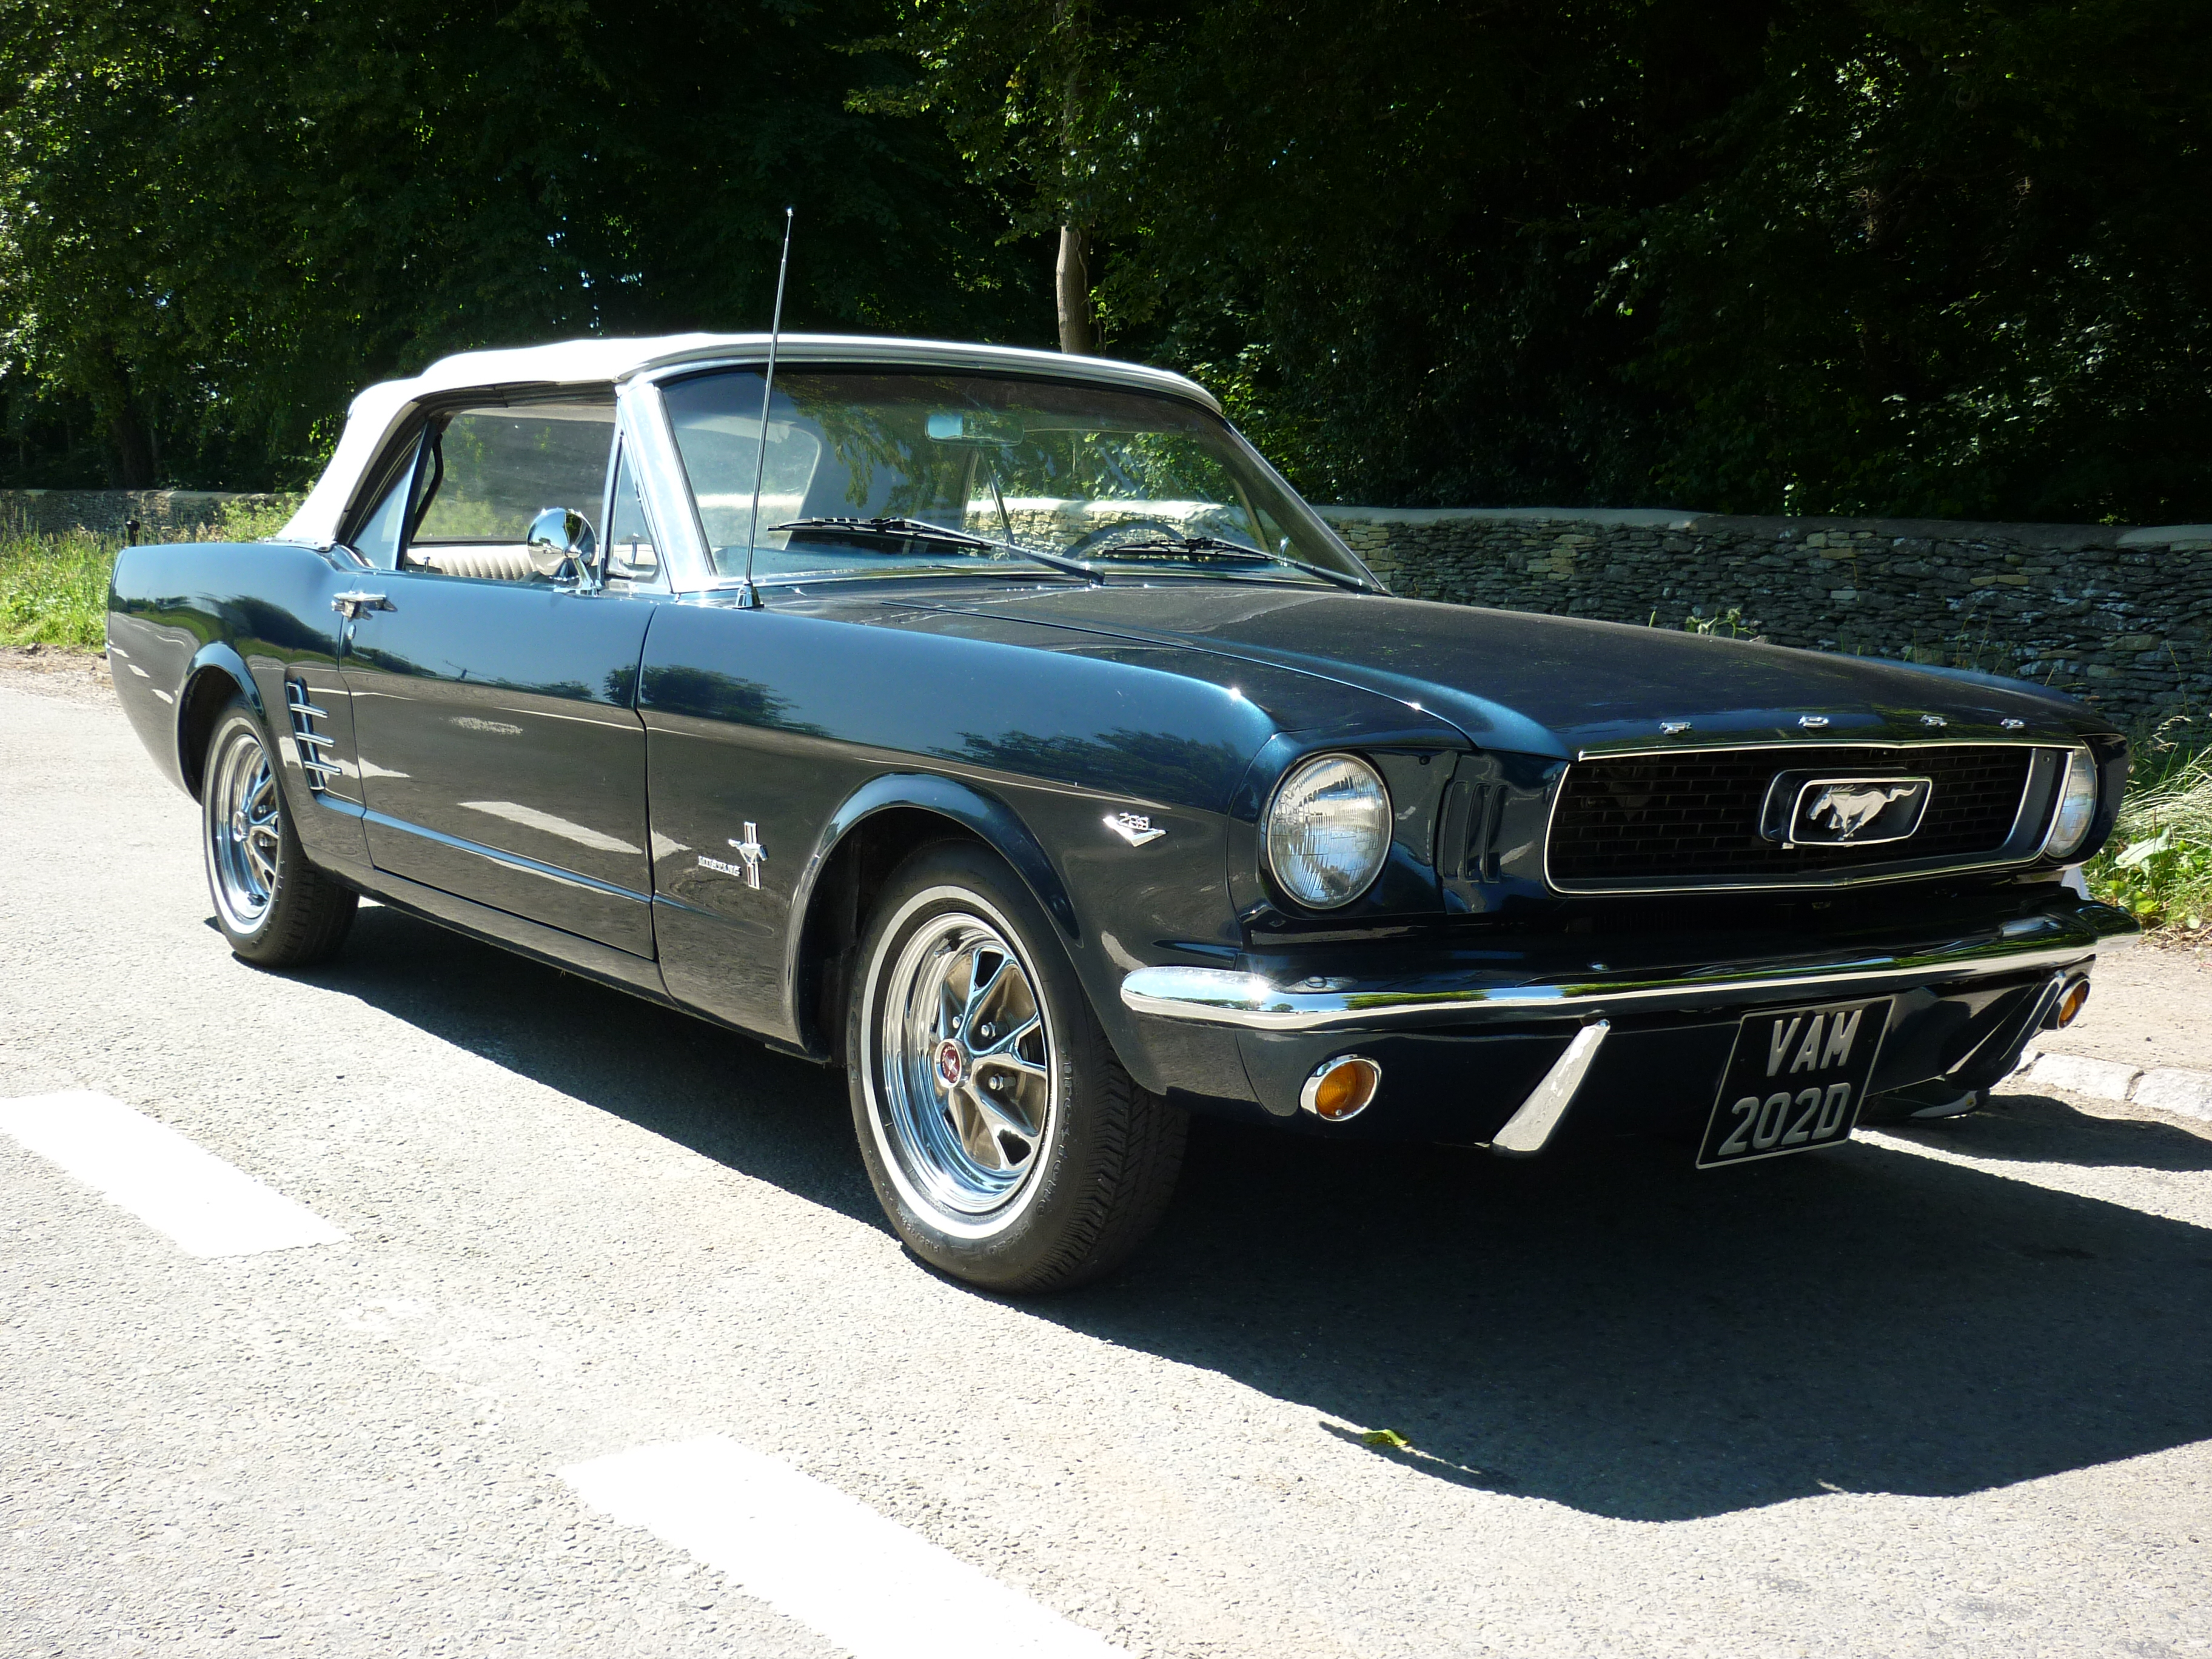 1966 Ford Mustang 289 cu-in V8 Convertible